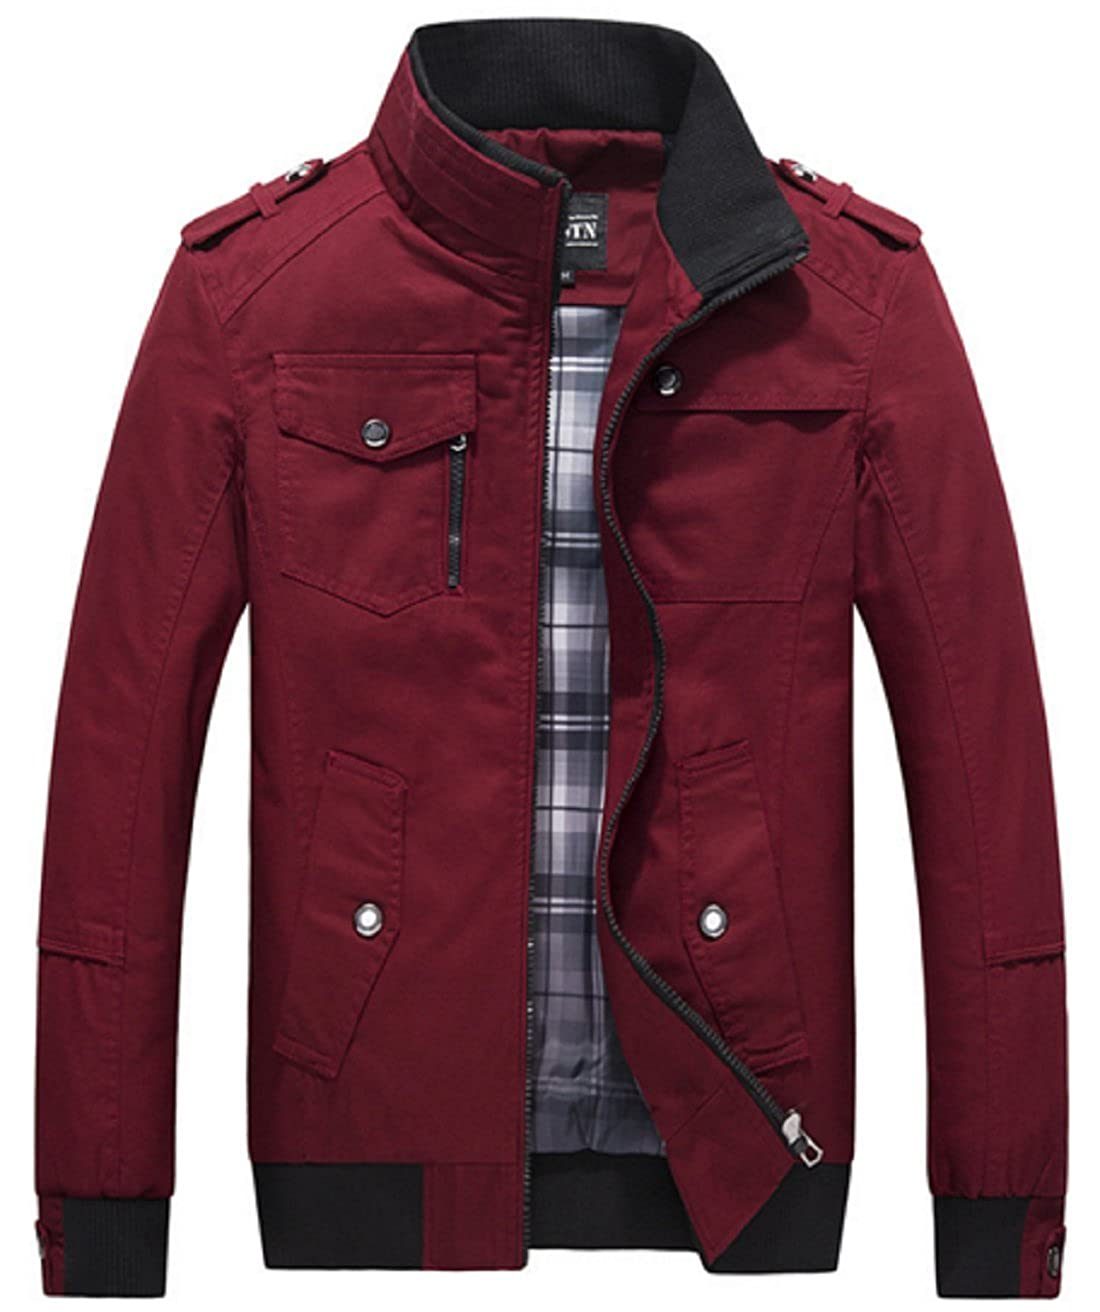 Olrek Men's Autumn and Fall Stand Colllar Outerwear Jacket Coat tgd275